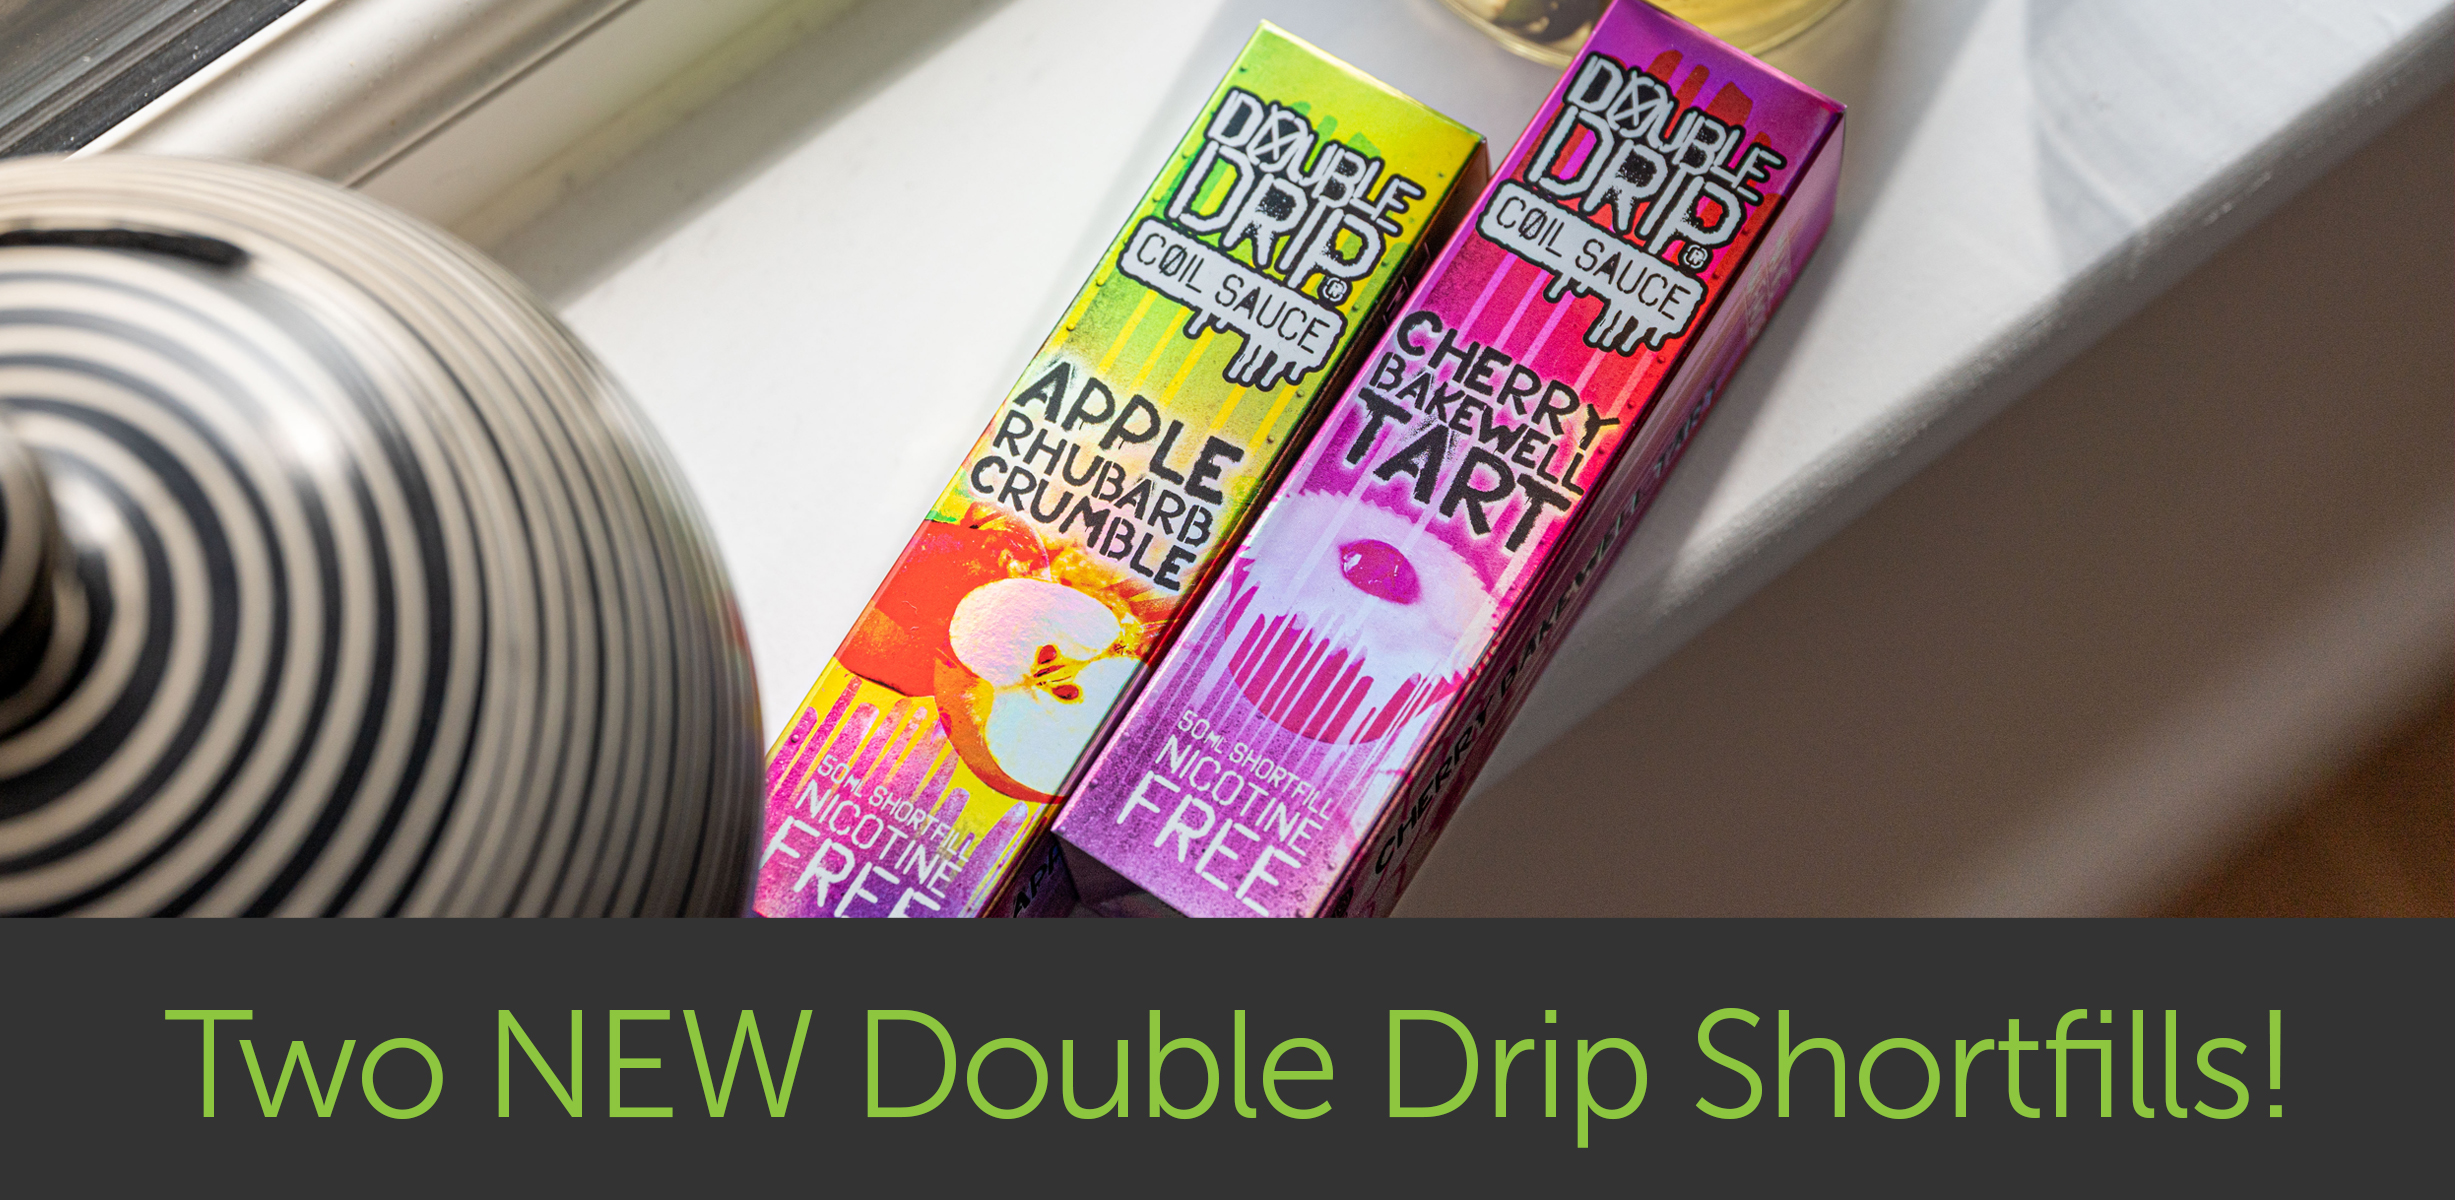 Two New Double Drip Shortfills!